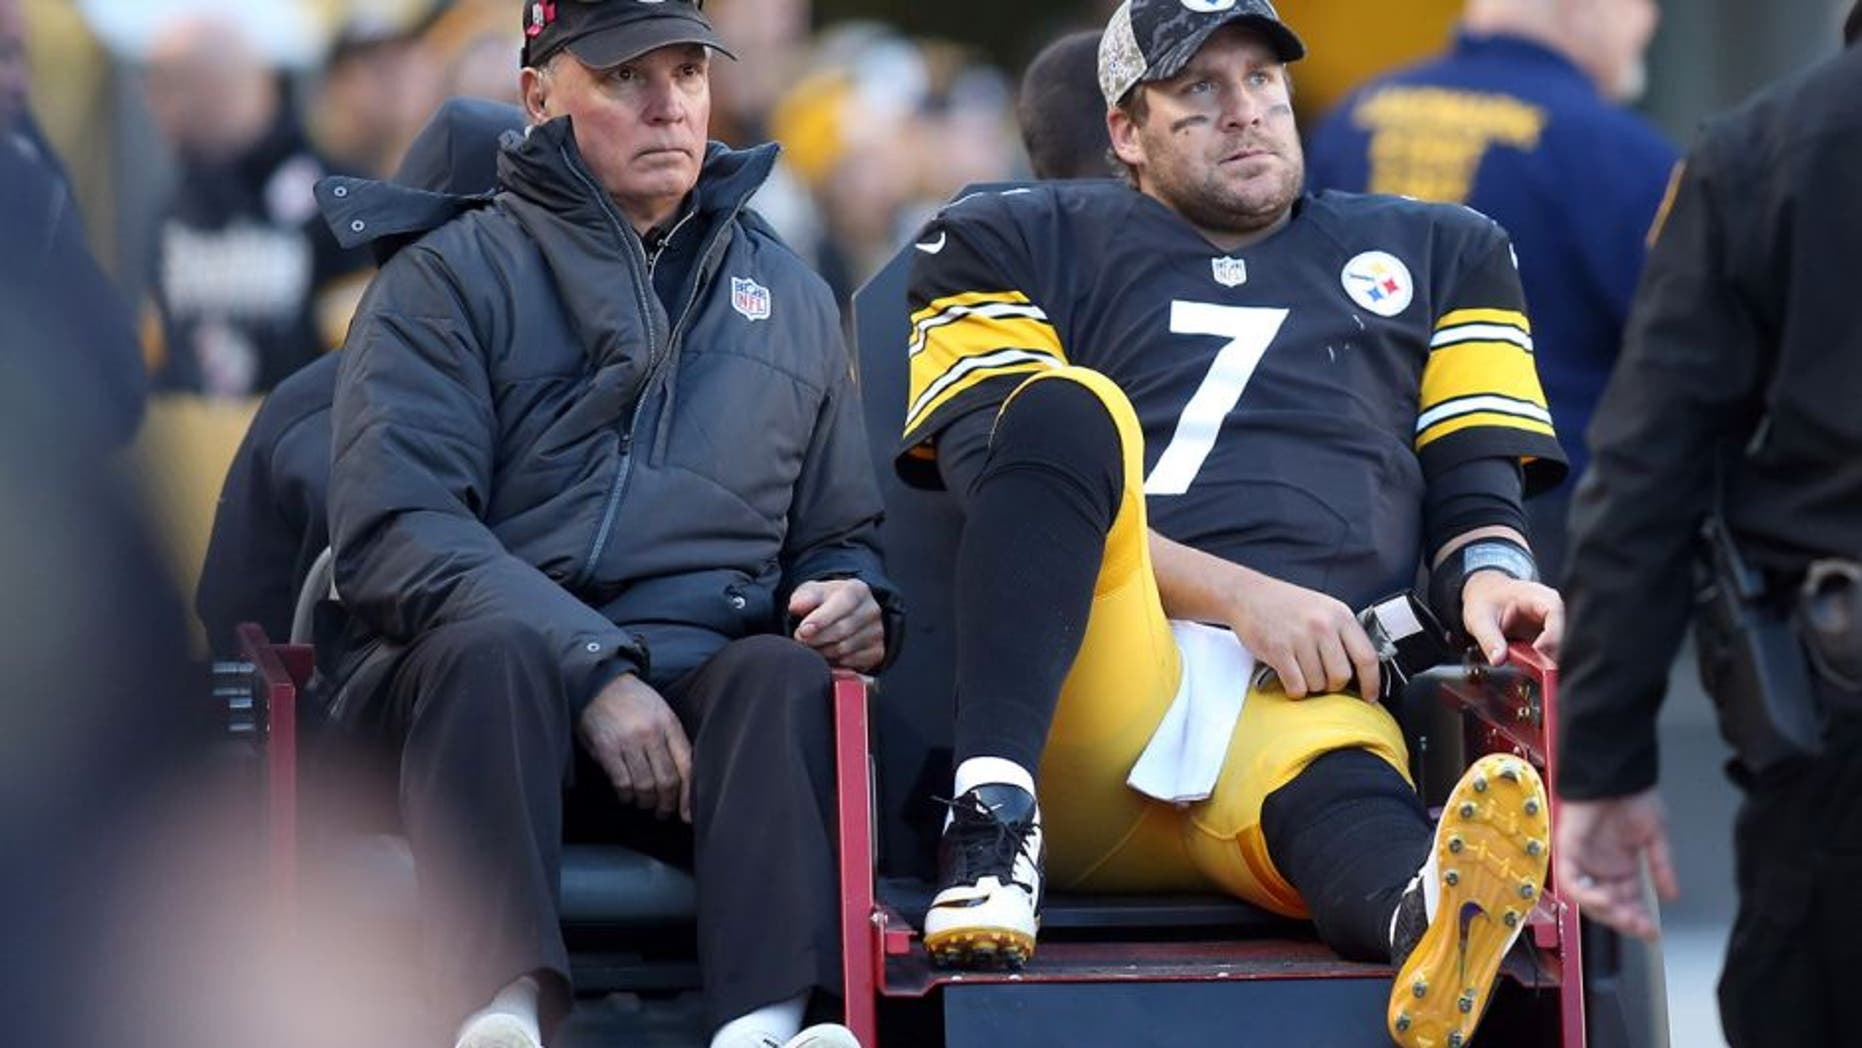 Nov 8, 2015; Pittsburgh, PA, USA; Pittsburgh Steelers quarterback Ben Roethlisberger (7) is taken from the field on a cart after suffering an apparent injury against the Oakland Raiders during the fourth quarter at Heinz Field. The Steelers won 38-35. Mandatory Credit: Charles LeClaire-USA TODAY Sports